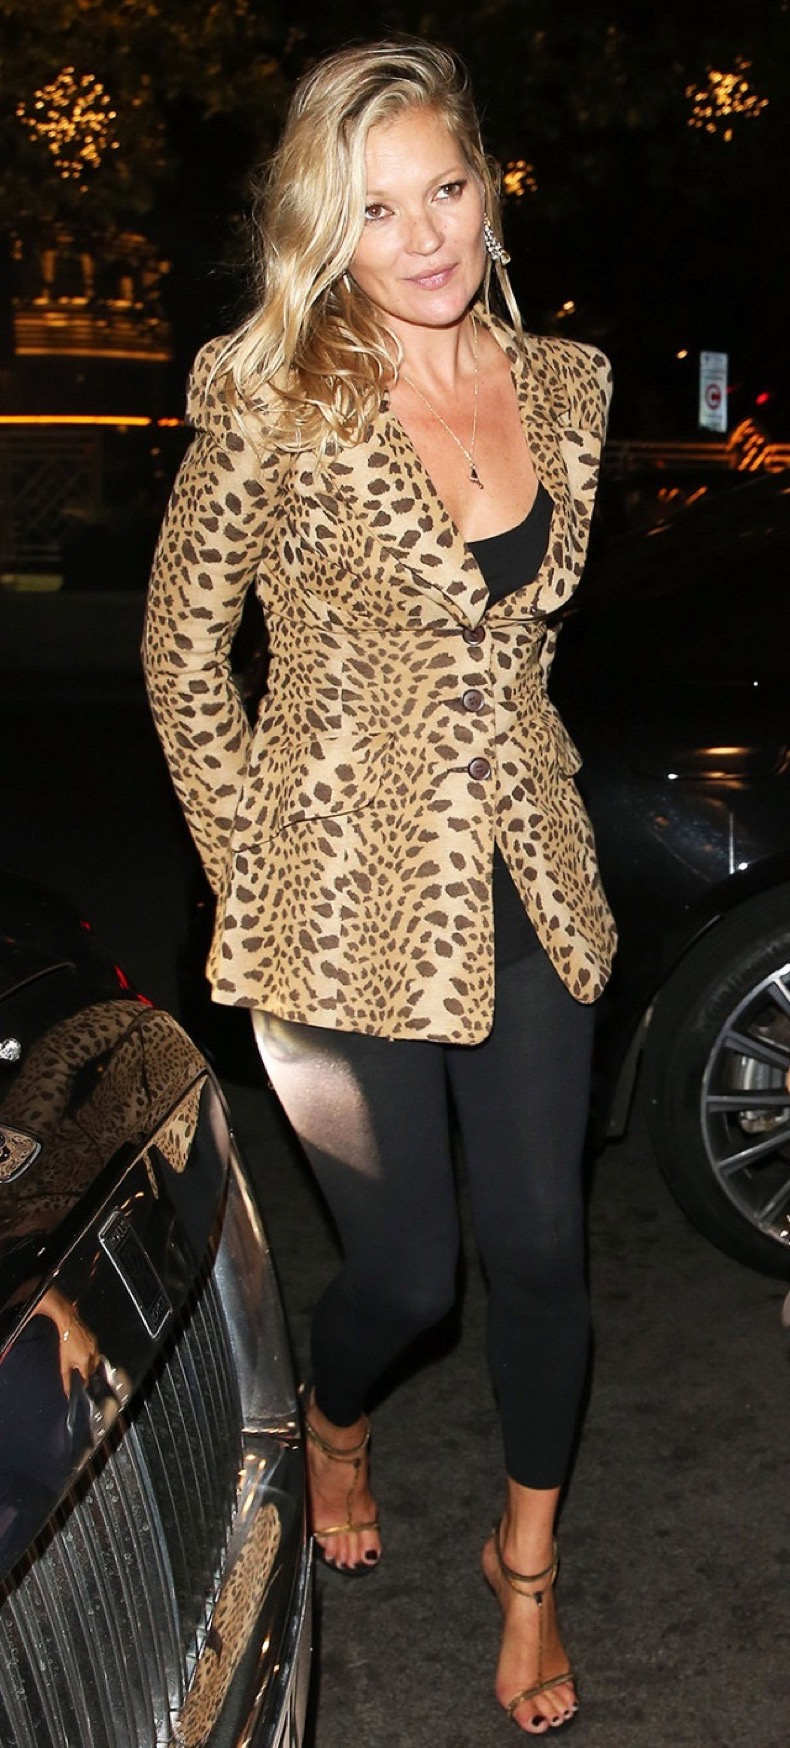 kate-moss-wearing-leggings-and-leopard-blazer-at-london-fashion-week-1963446-1478286417-640x0c